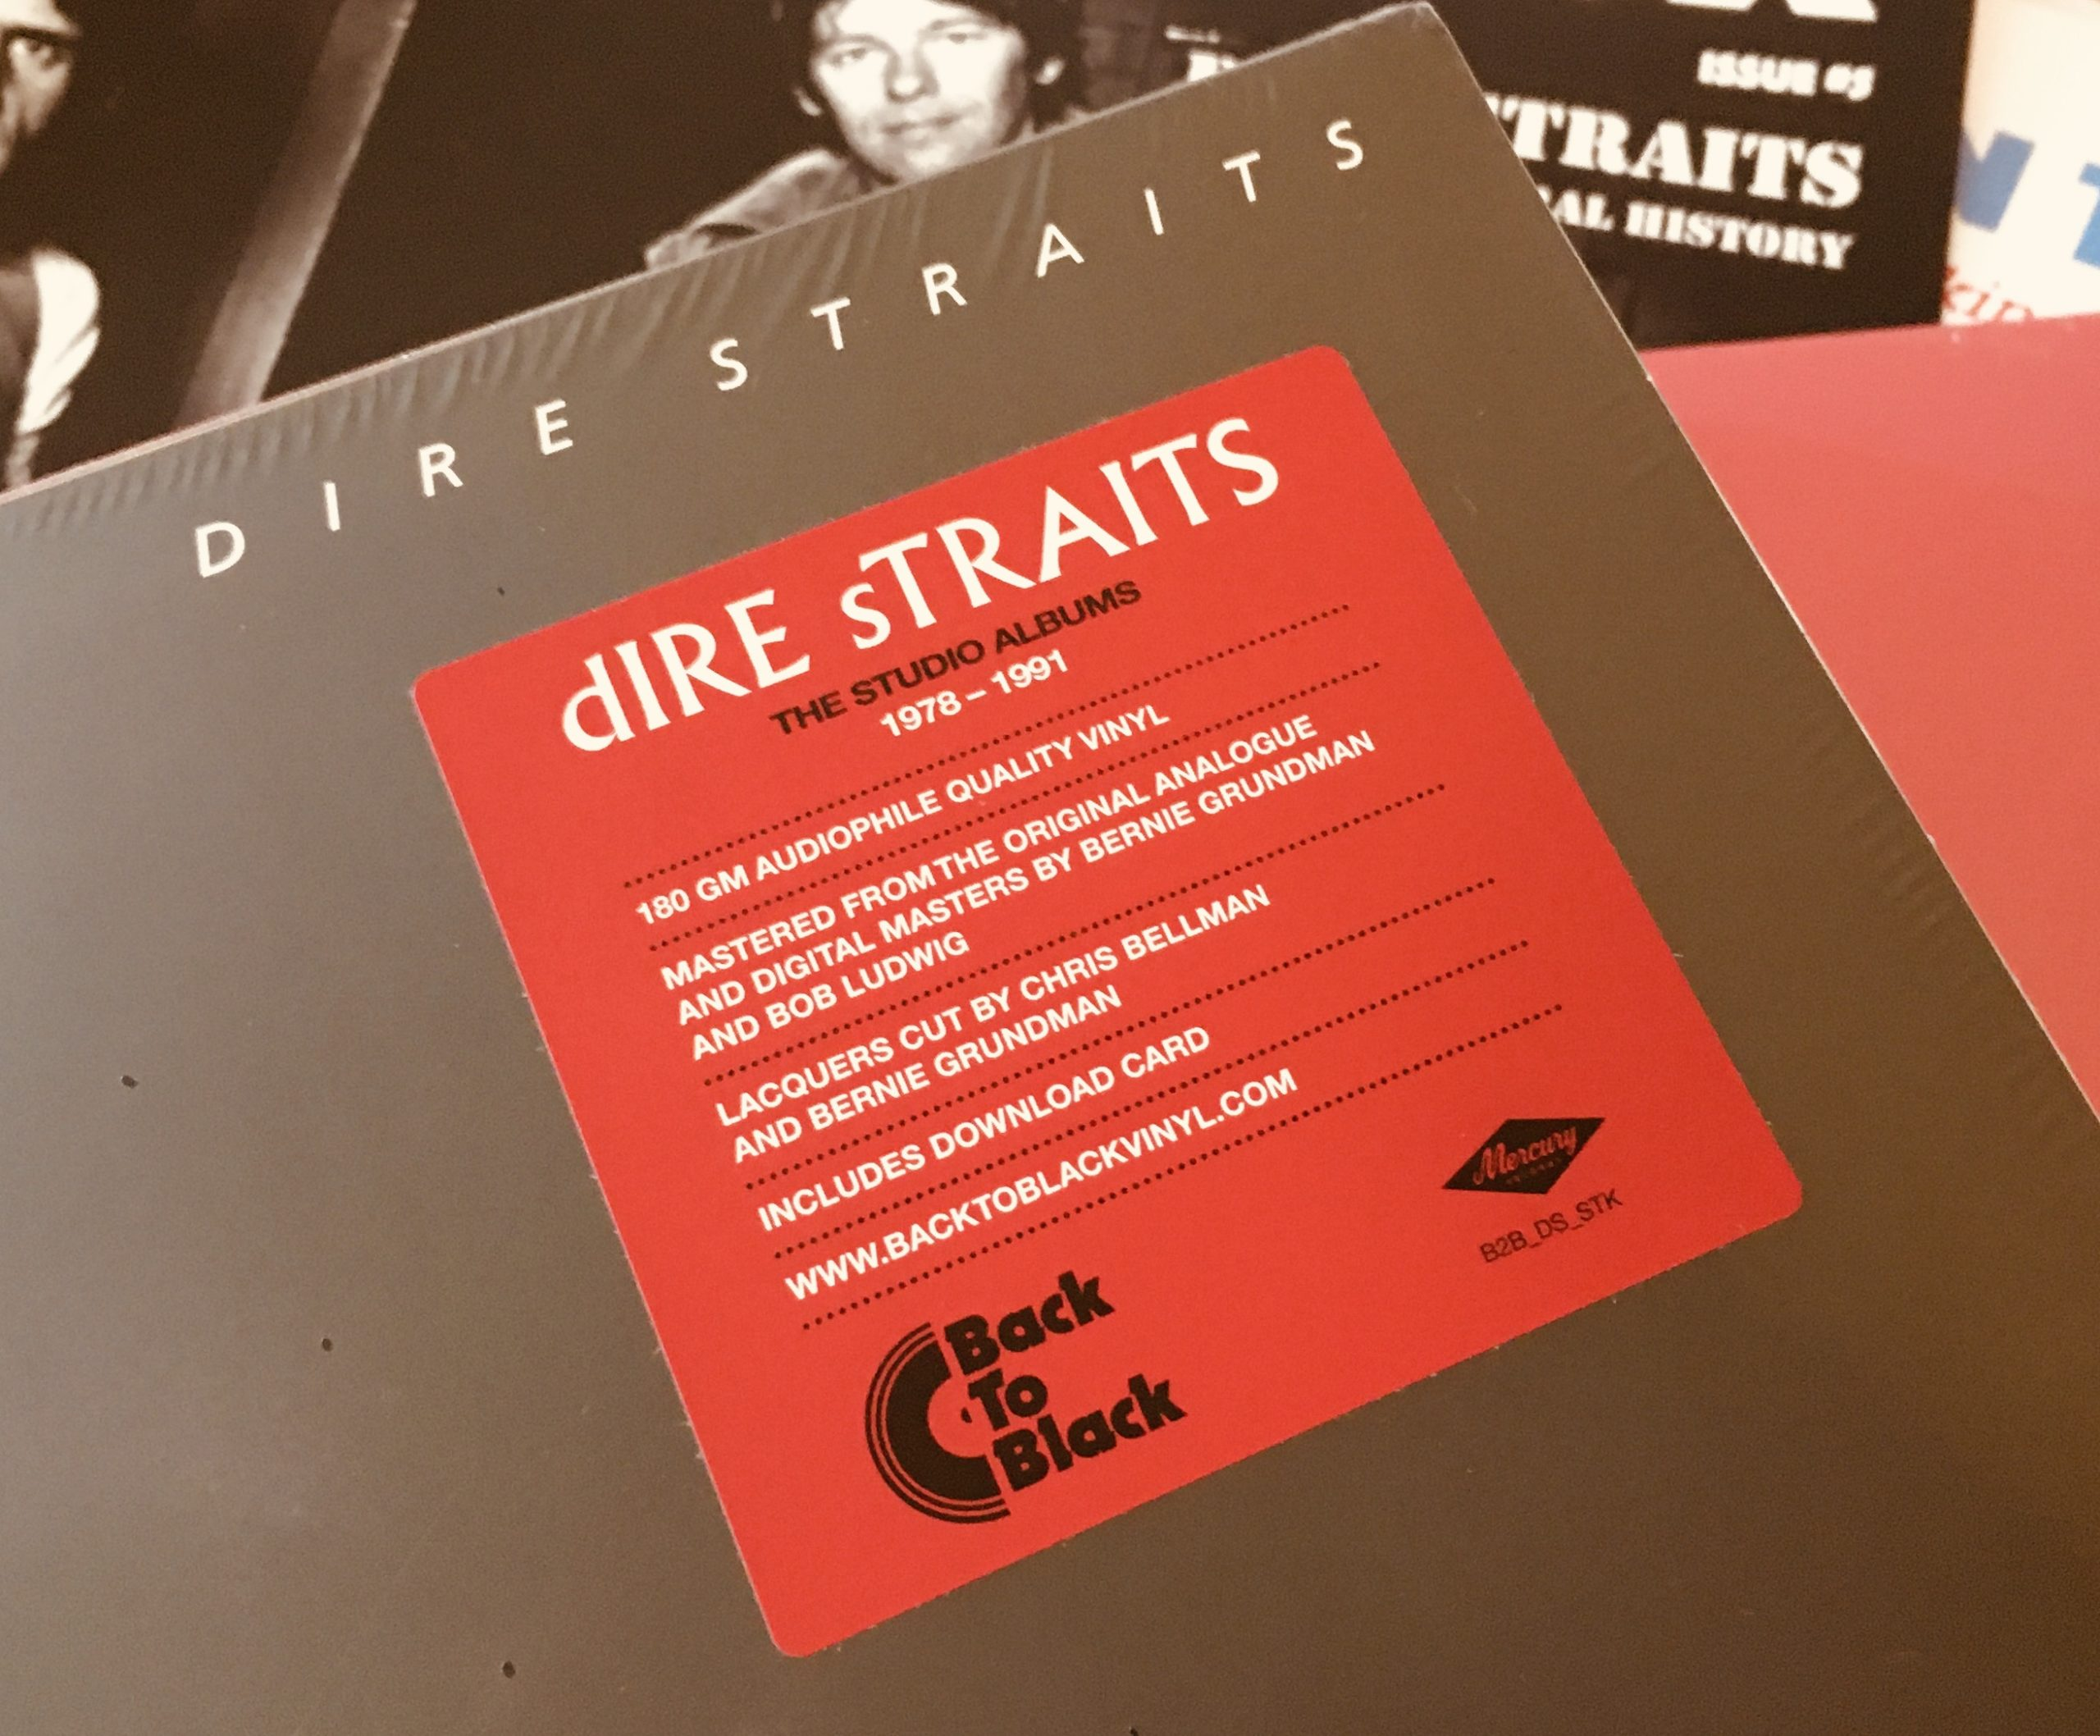 Geek Insider, GeekInsider, GeekInsider.com,, Bandbox Unboxed Vol. 5 - Dire Straits, Culture, Entertainment, Events, Featured, Geek Life